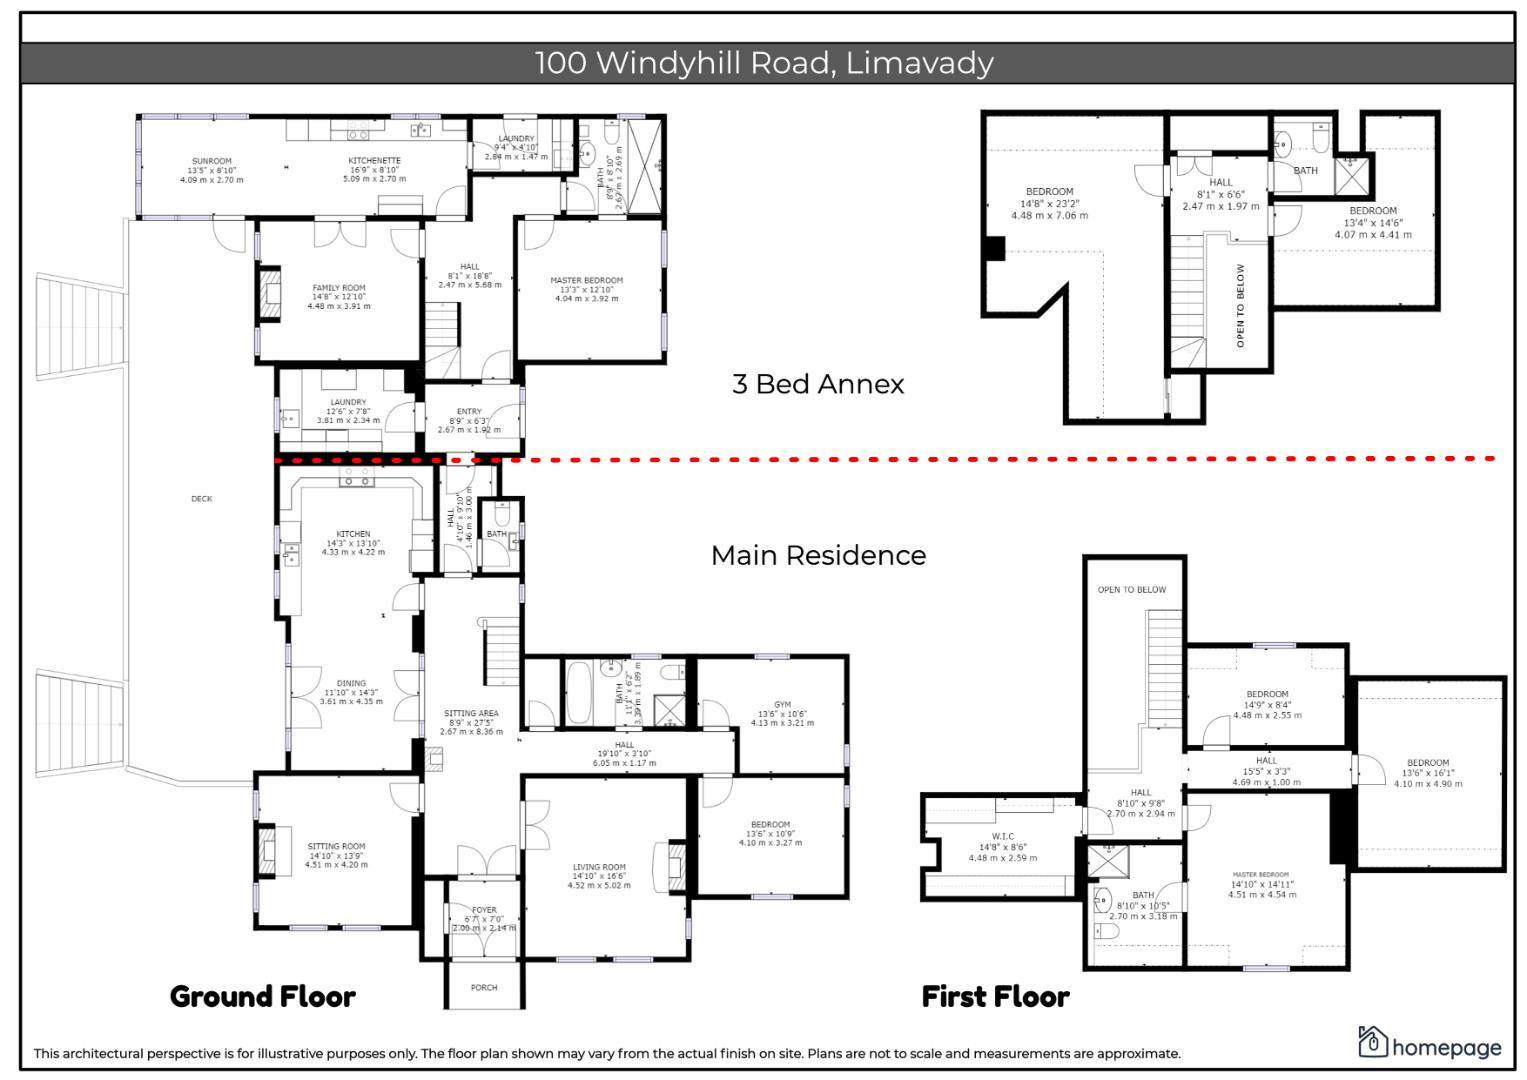 100 Windyhill Road Limavady Floor Plan.png